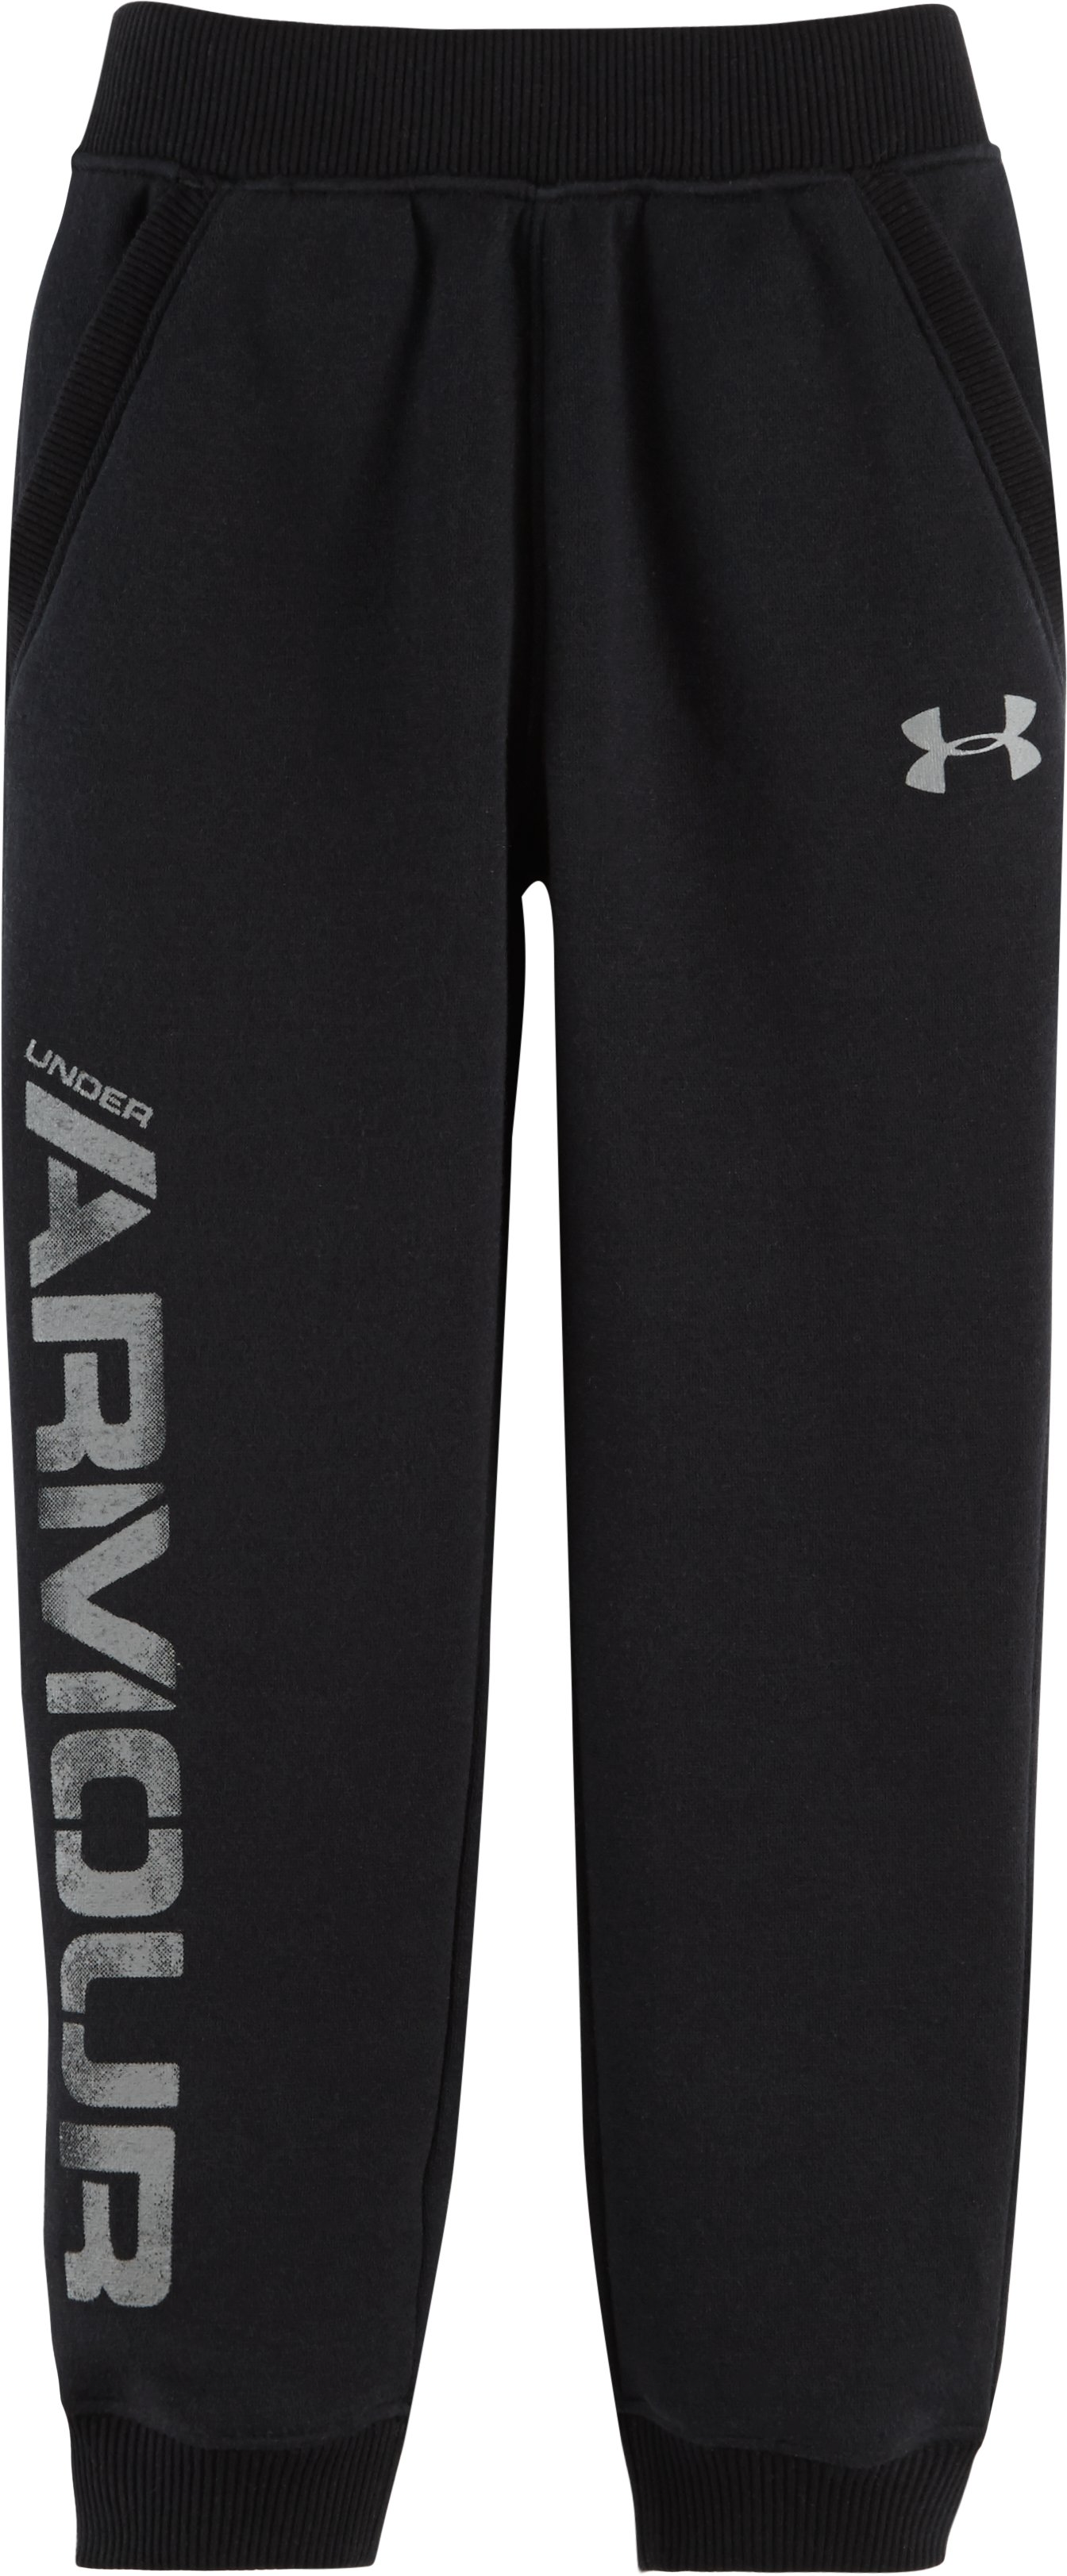 Boys' Pre-School UA Titan Fleece Joggers, Black , Laydown